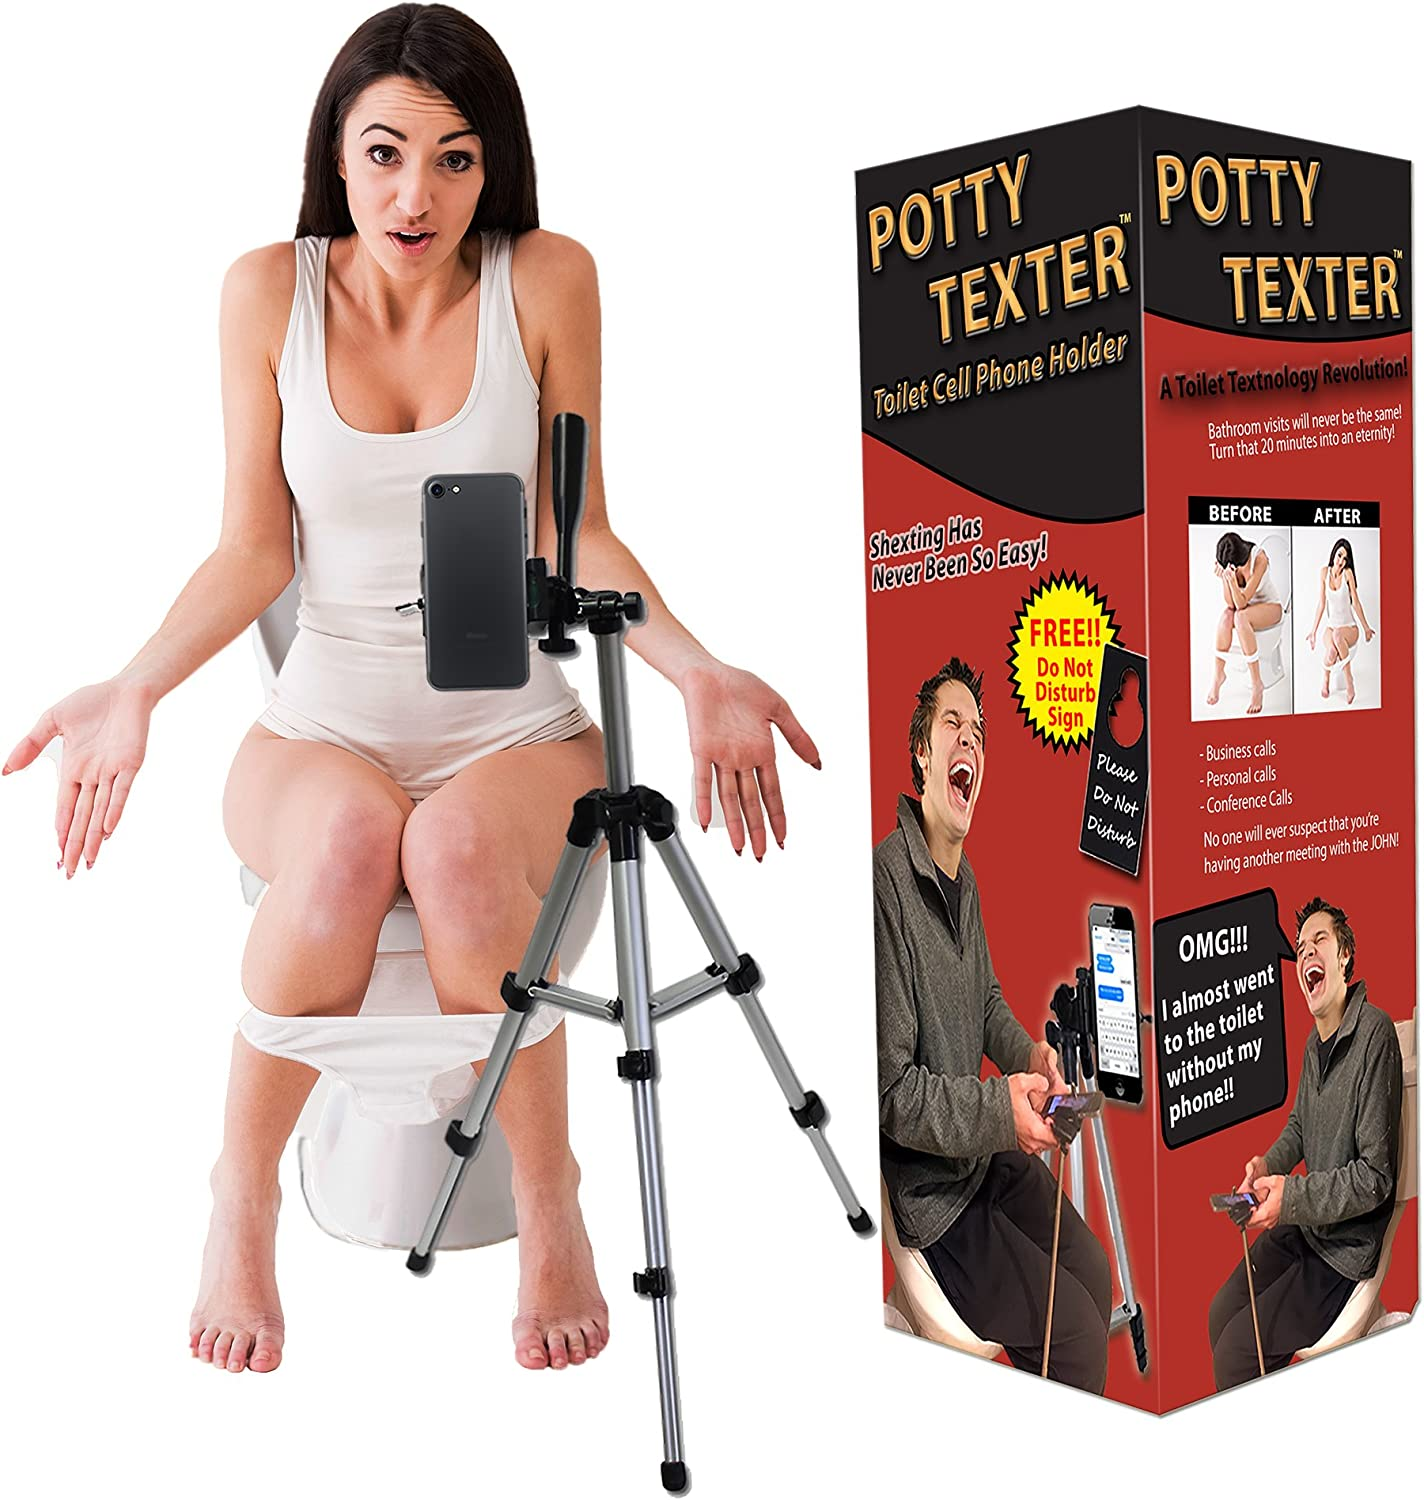 Potty Texter Toilet Cell Phone Holder  Hands Free Texting by Gears Out by Gears Out